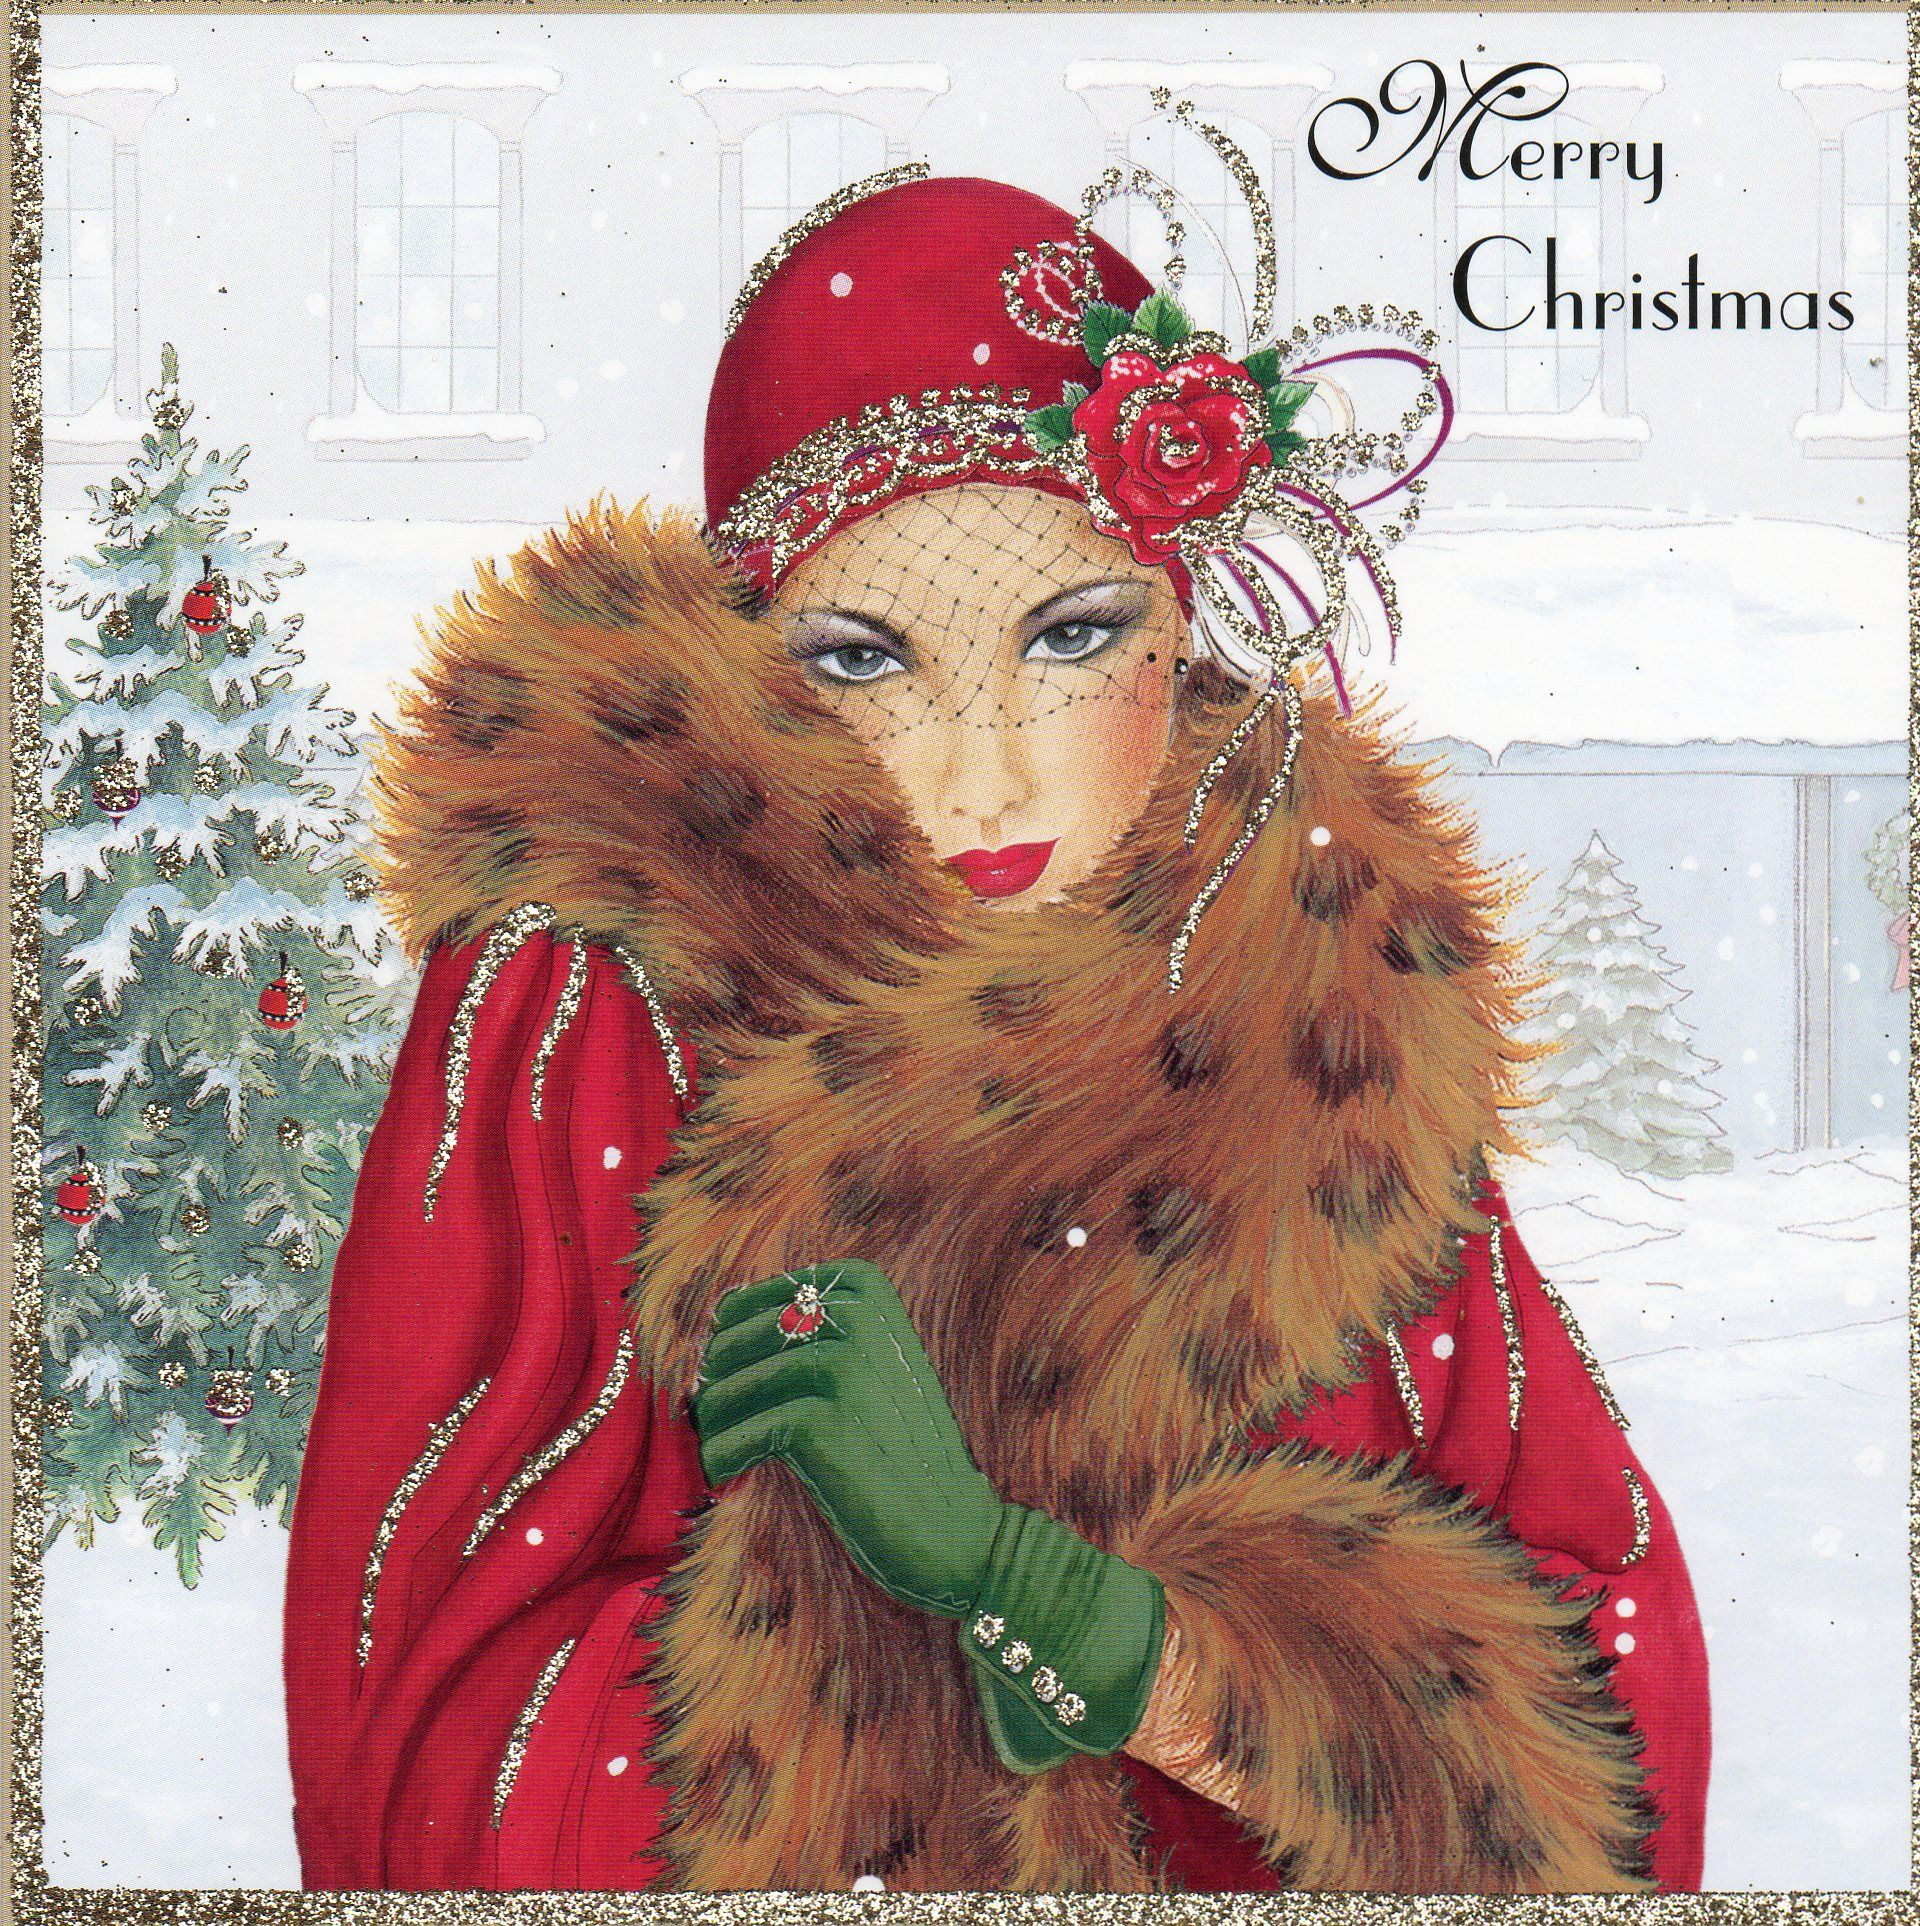 A Very Merry Christmas To All My Friends And Followers May You Be Filled With The Love Of Family Frie Art Deco Cards Christmas Art Vintage Christmas Images